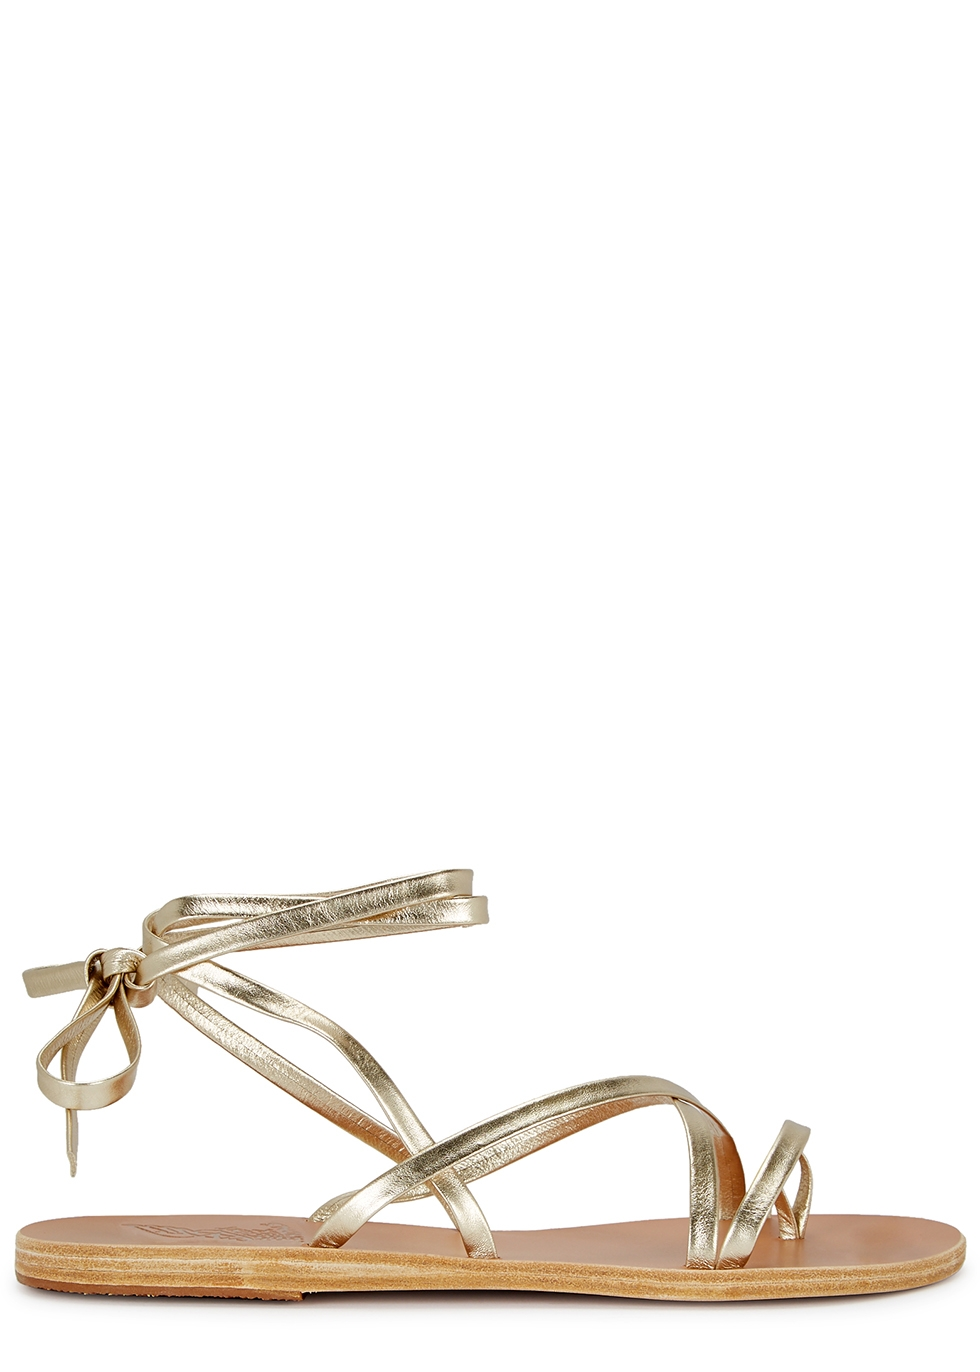 Morfi gold leather sandals